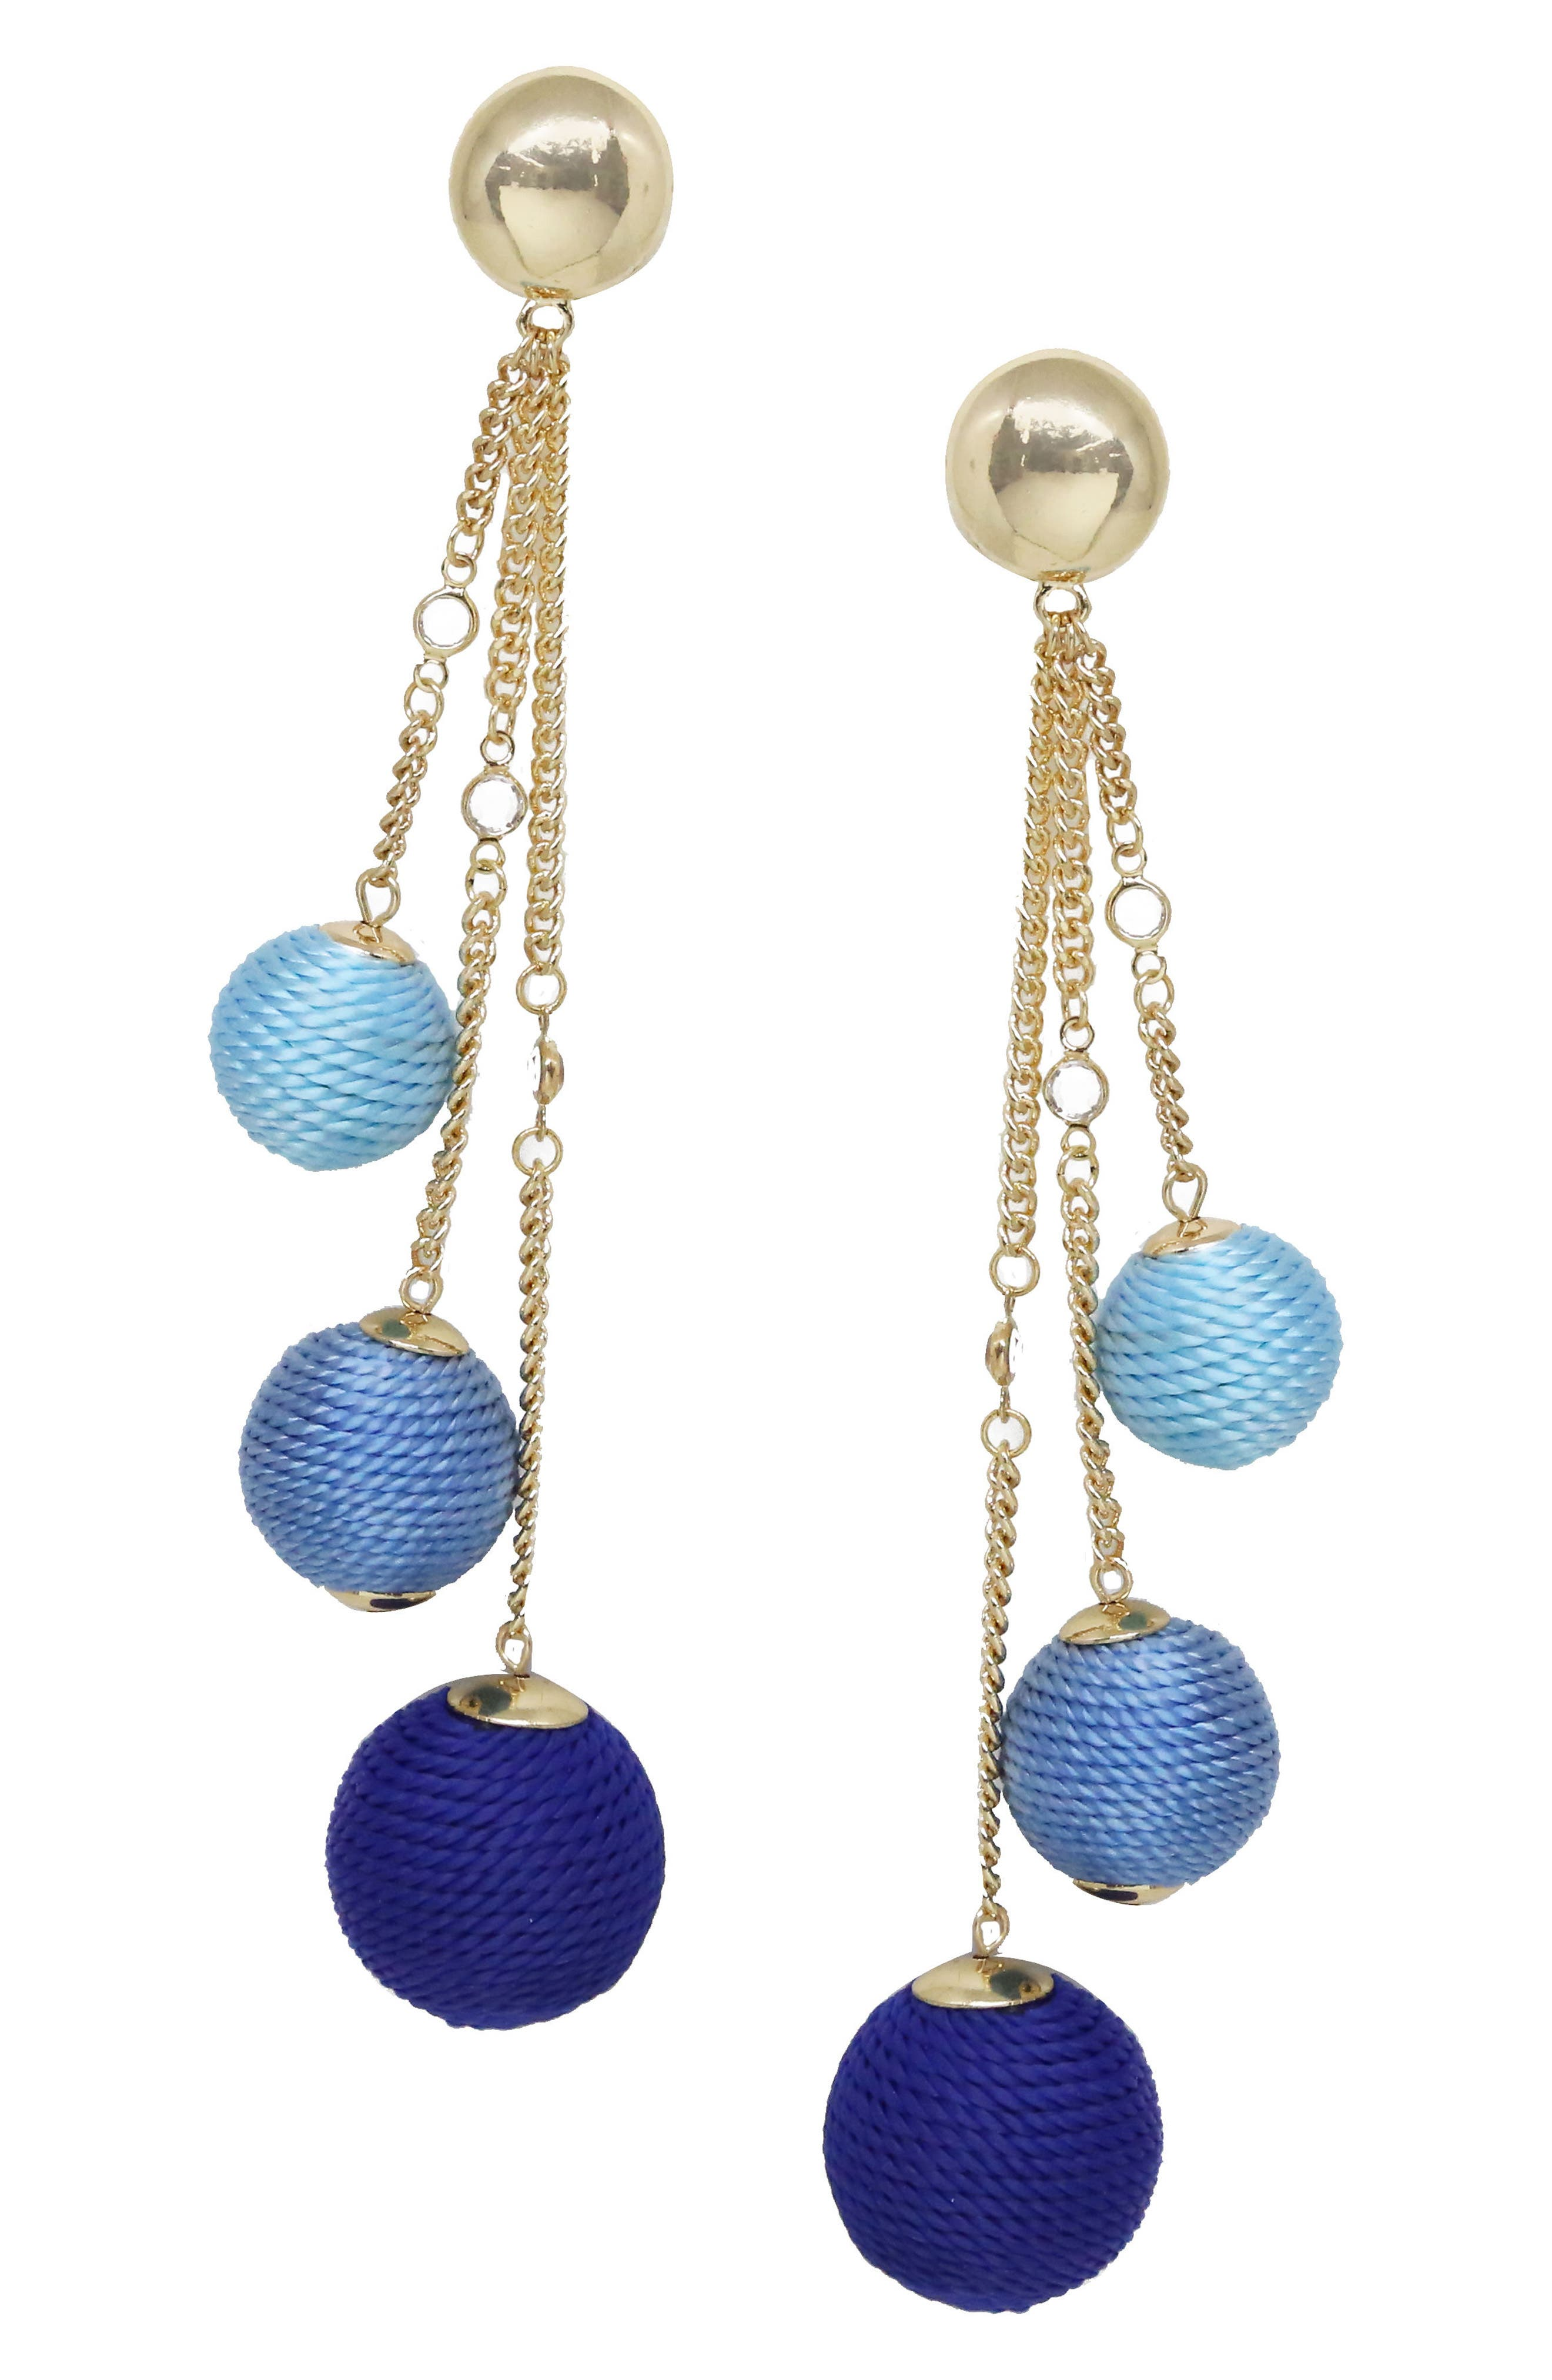 Wrapped Ball & Chain Statement Earrings,                         Main,                         color, Blue